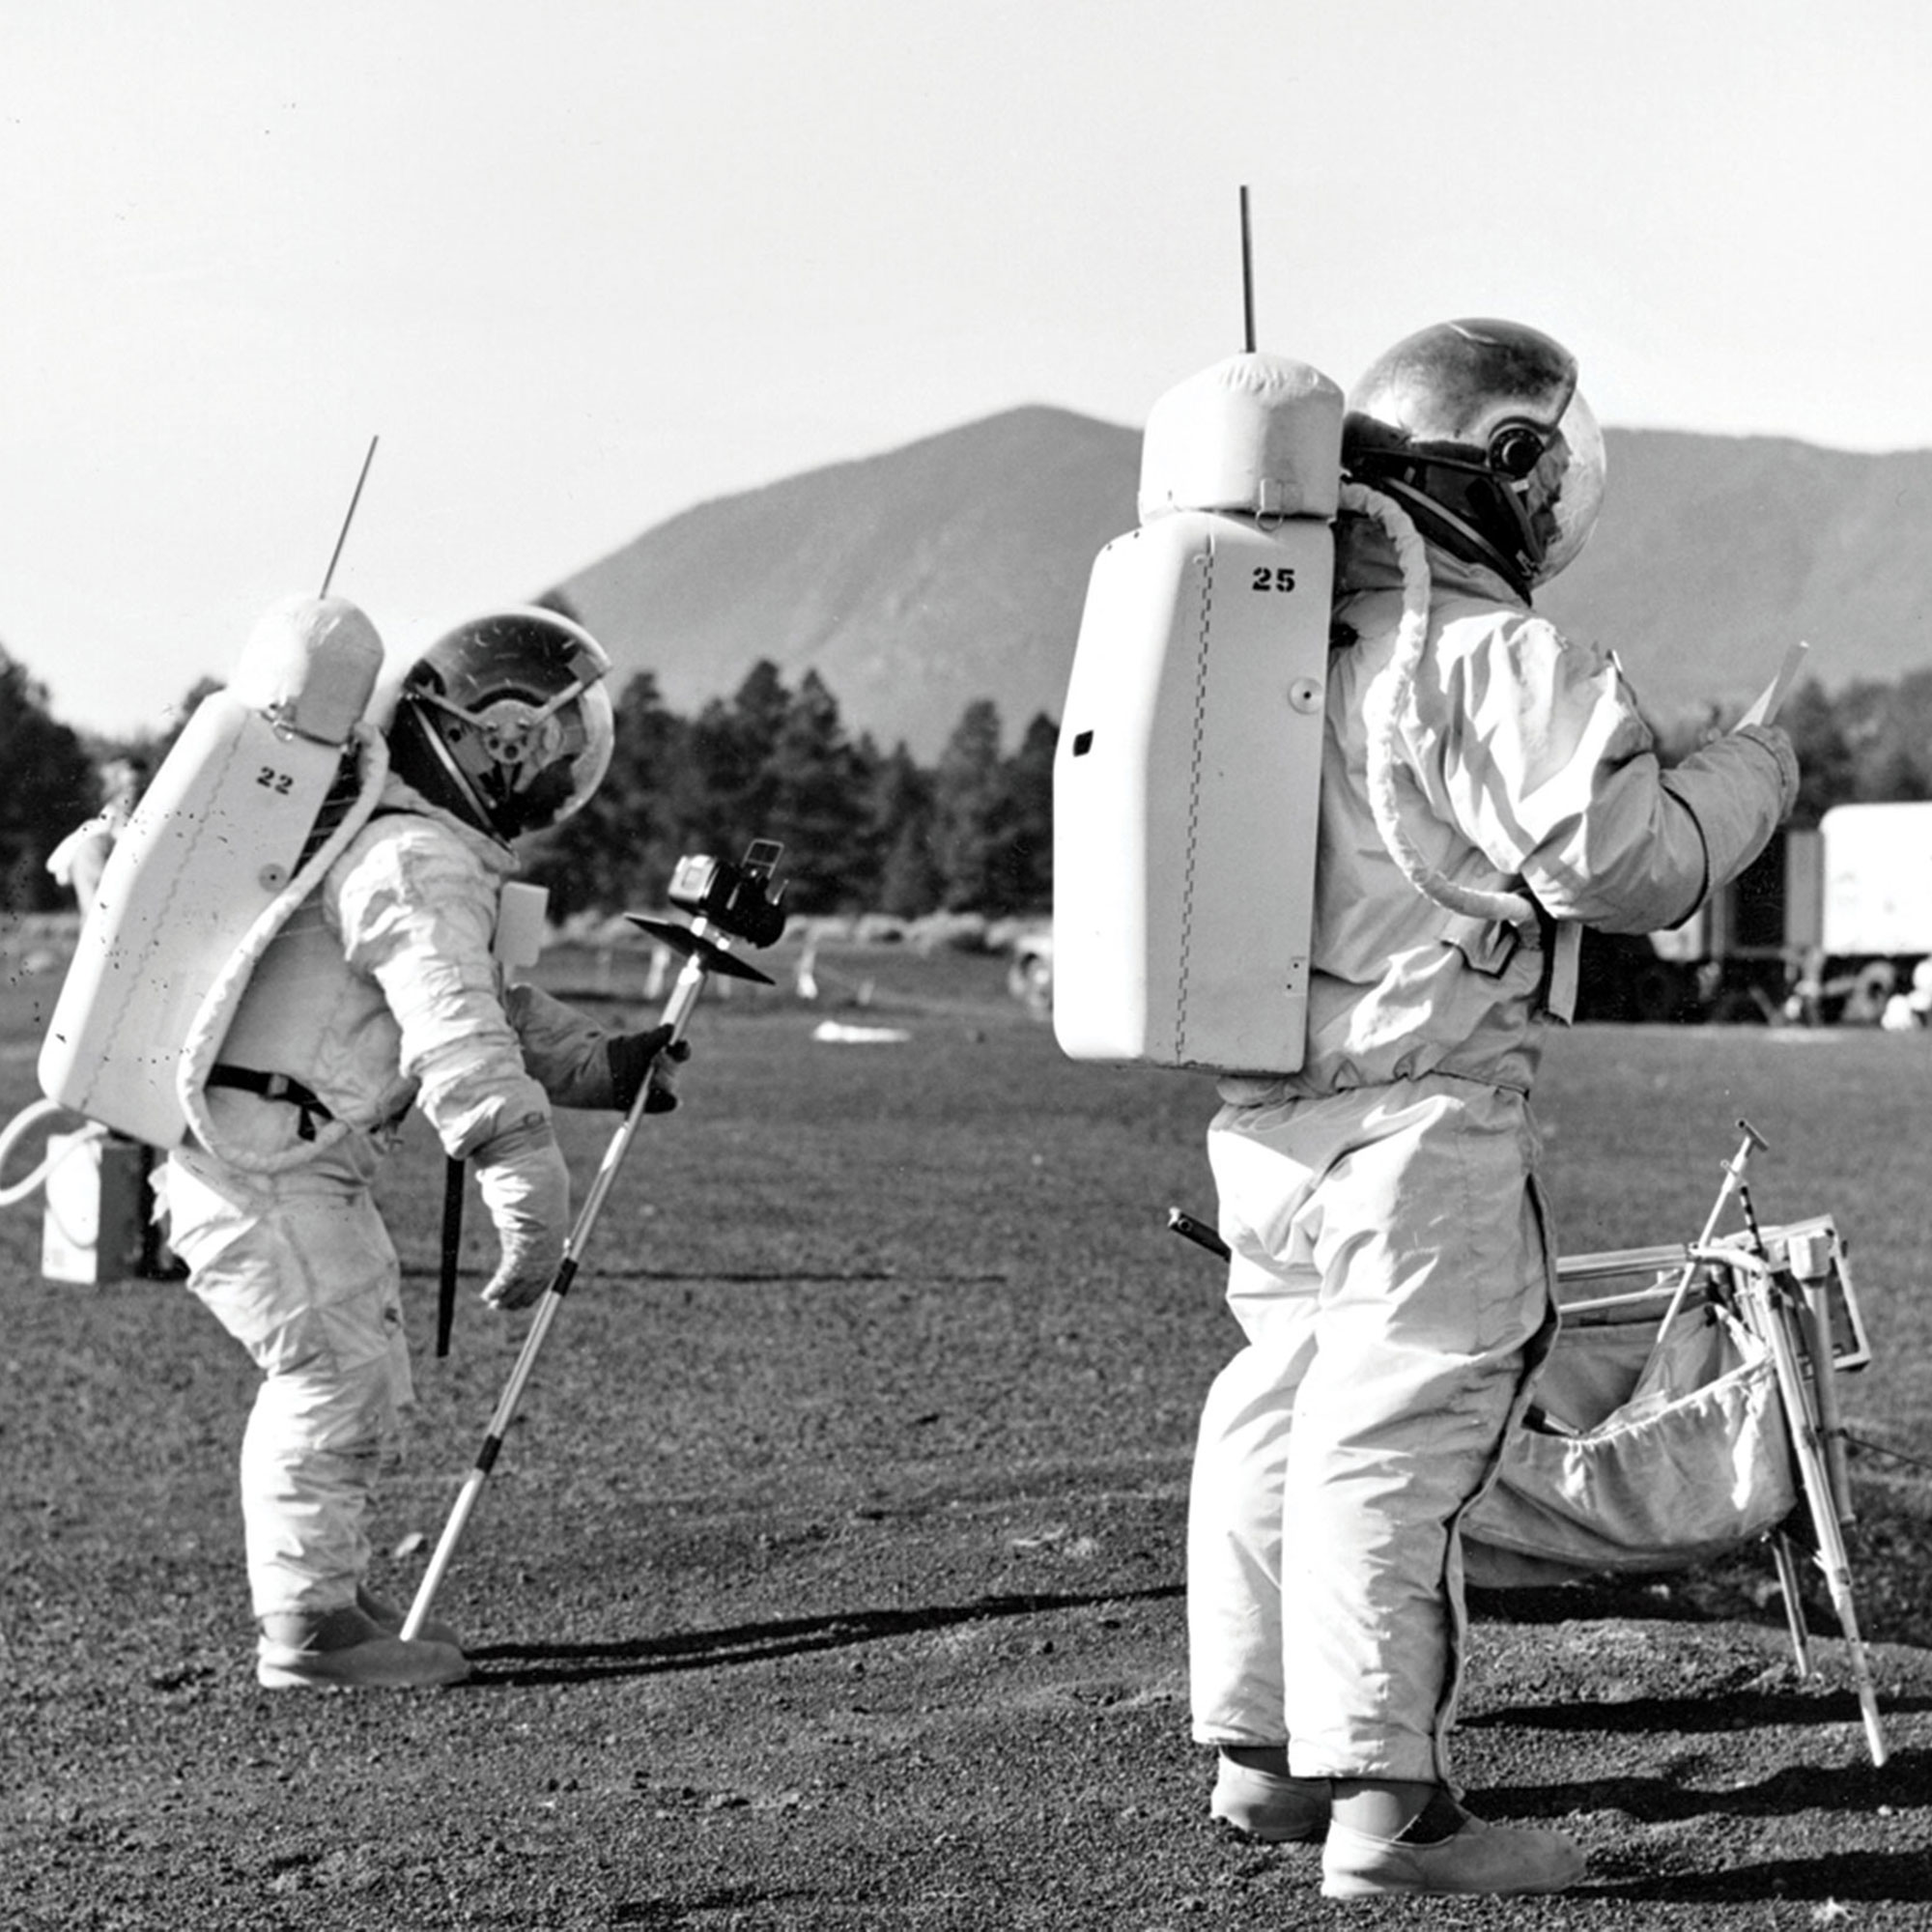 USGS geologists simulate a lunar surface mission at Cinder Lake